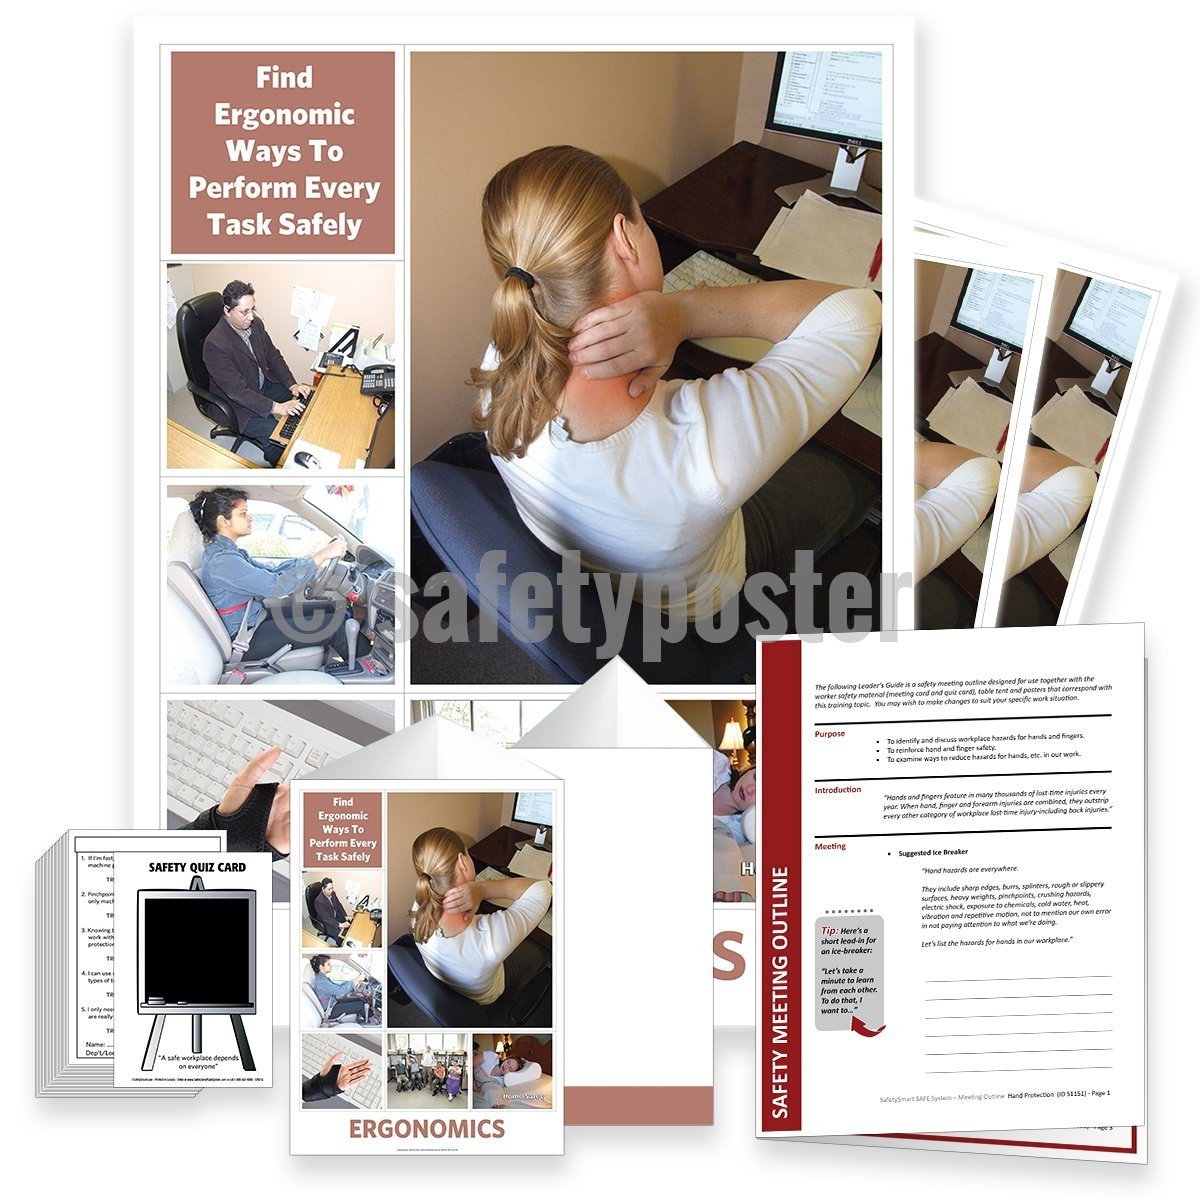 Safety Meeting Kit - Find Ergonomic Ways To Perform Tasks Safely Kits